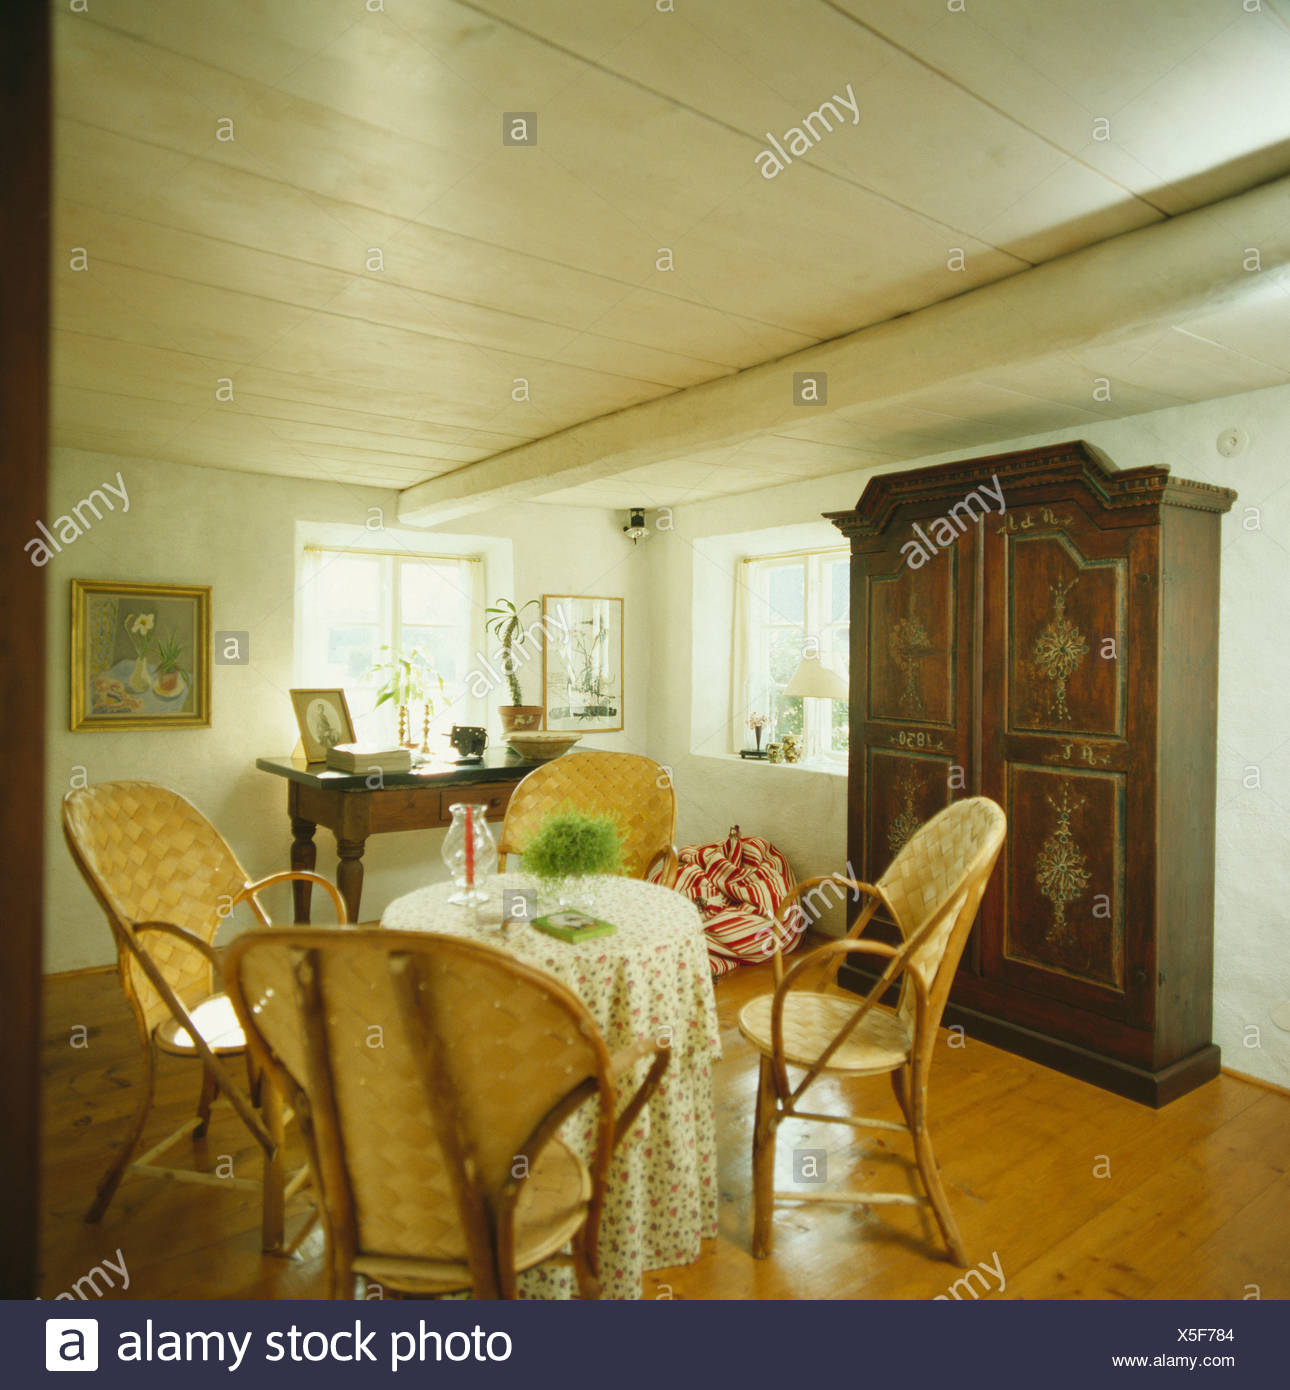 Swedish country diningroom with large cupboard and table with willow chairs on polished wood floor - Stock Image